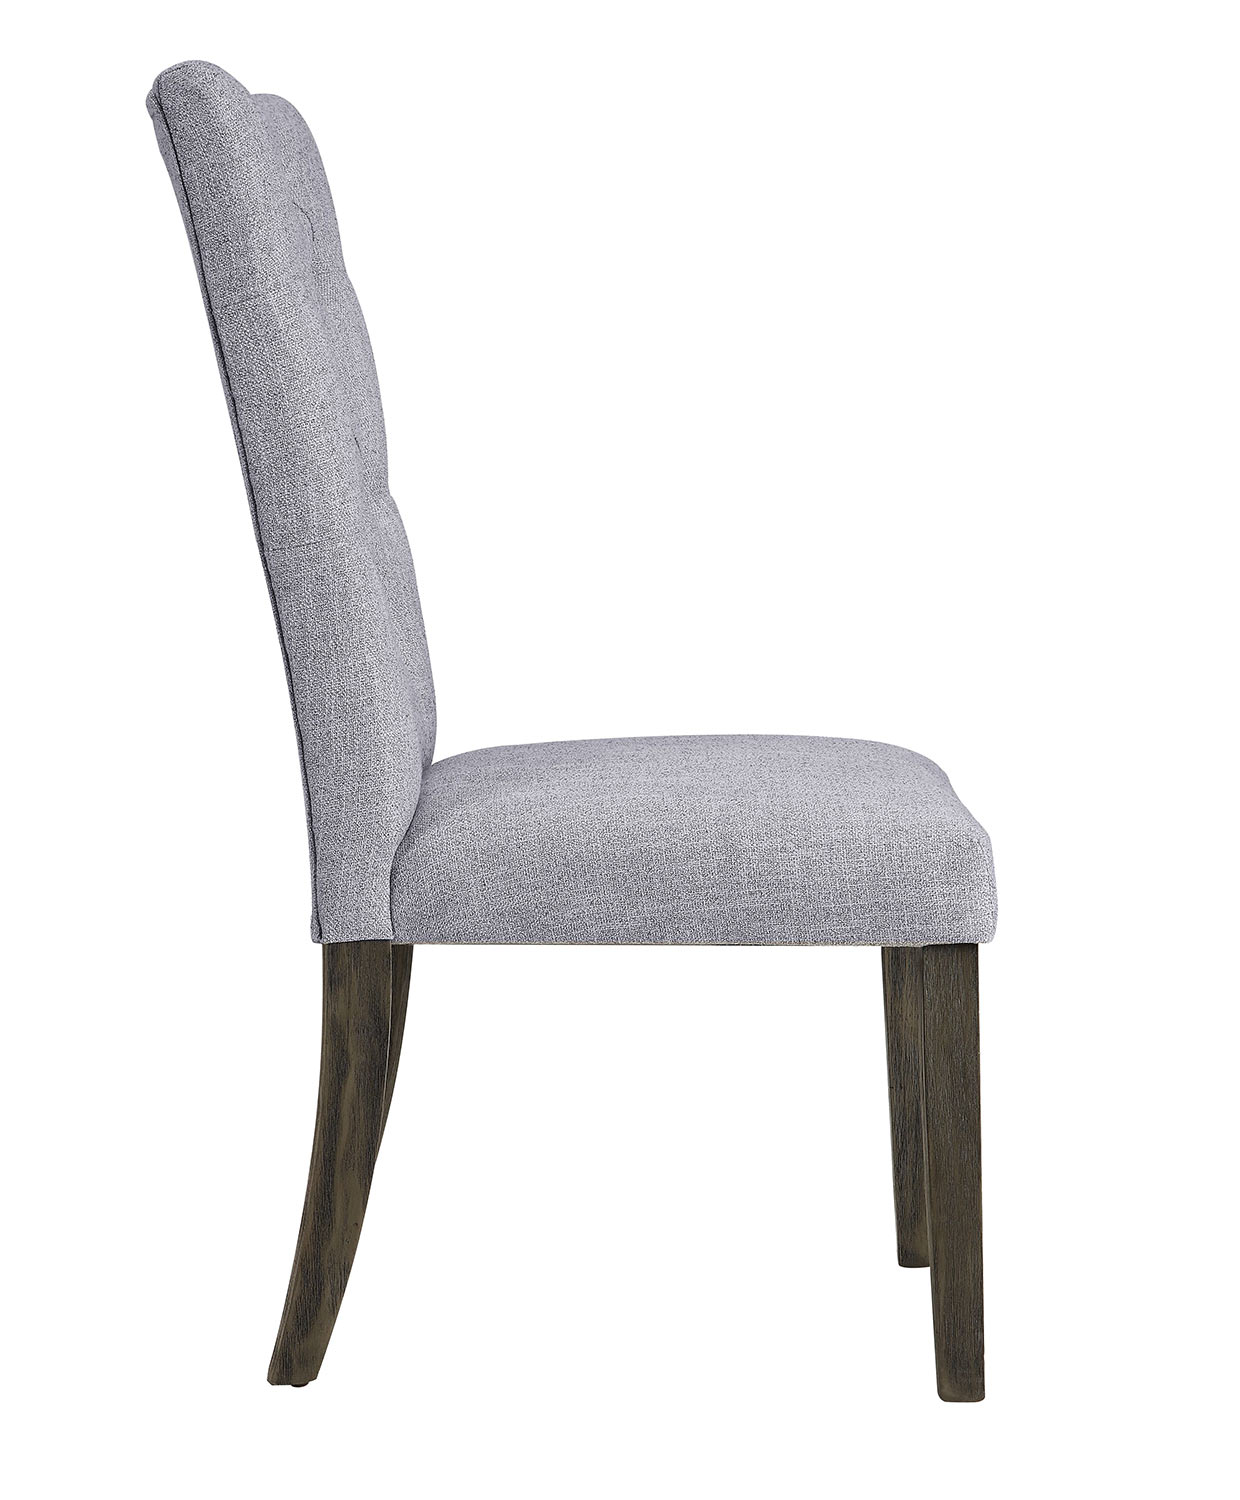 Acme Merel Side Chair - Gray Fabric/Gray Oak